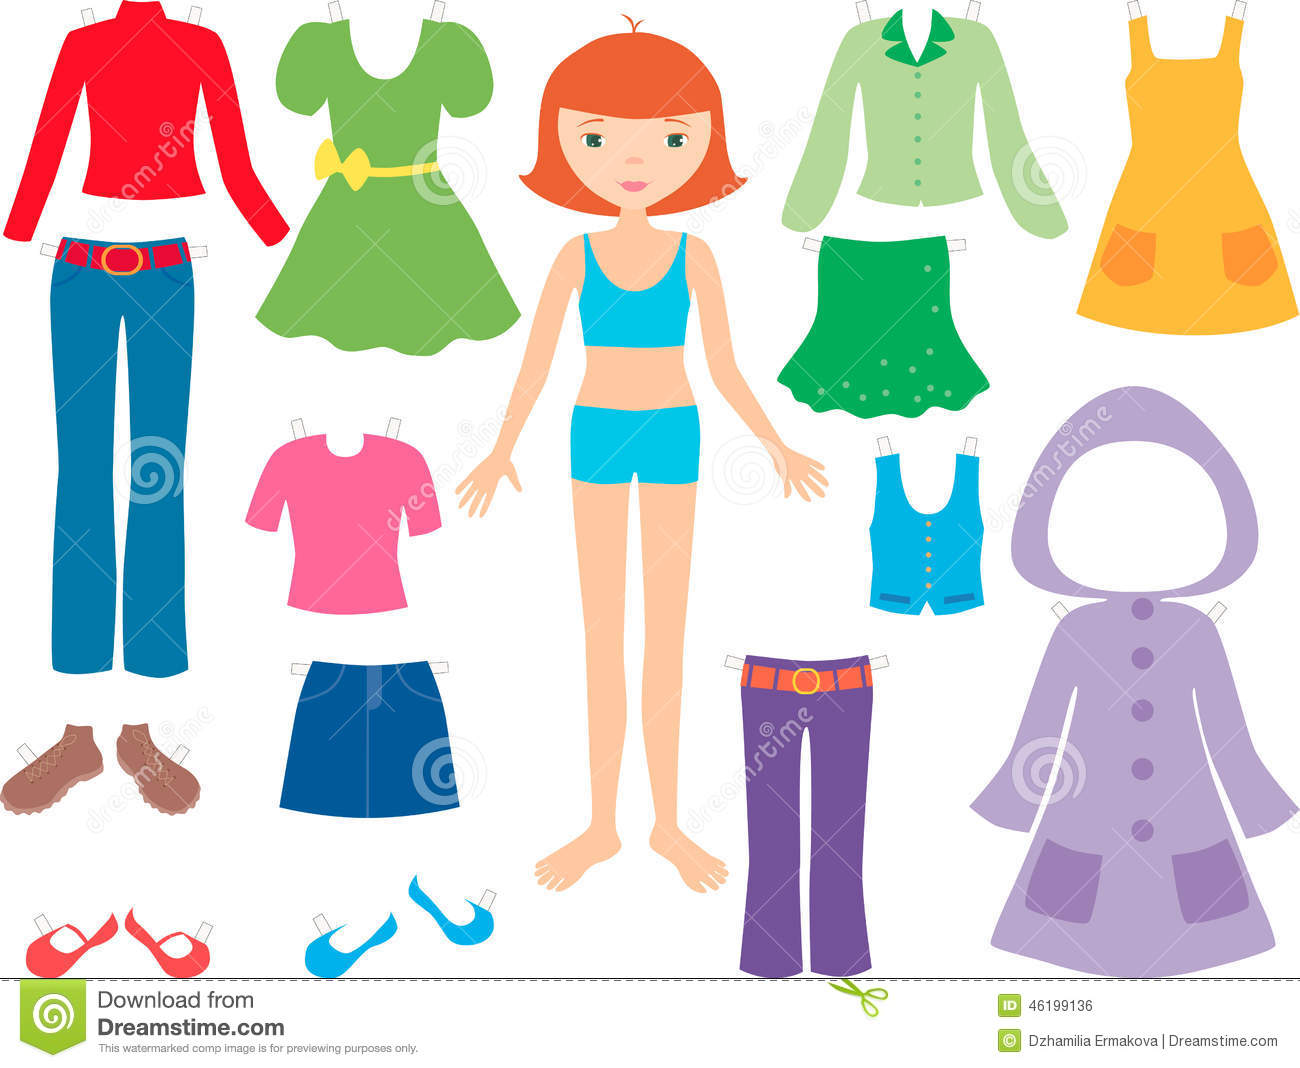 Clothes girls clipart image free library Clothes for girls clipart 9 » Clipart Station image free library